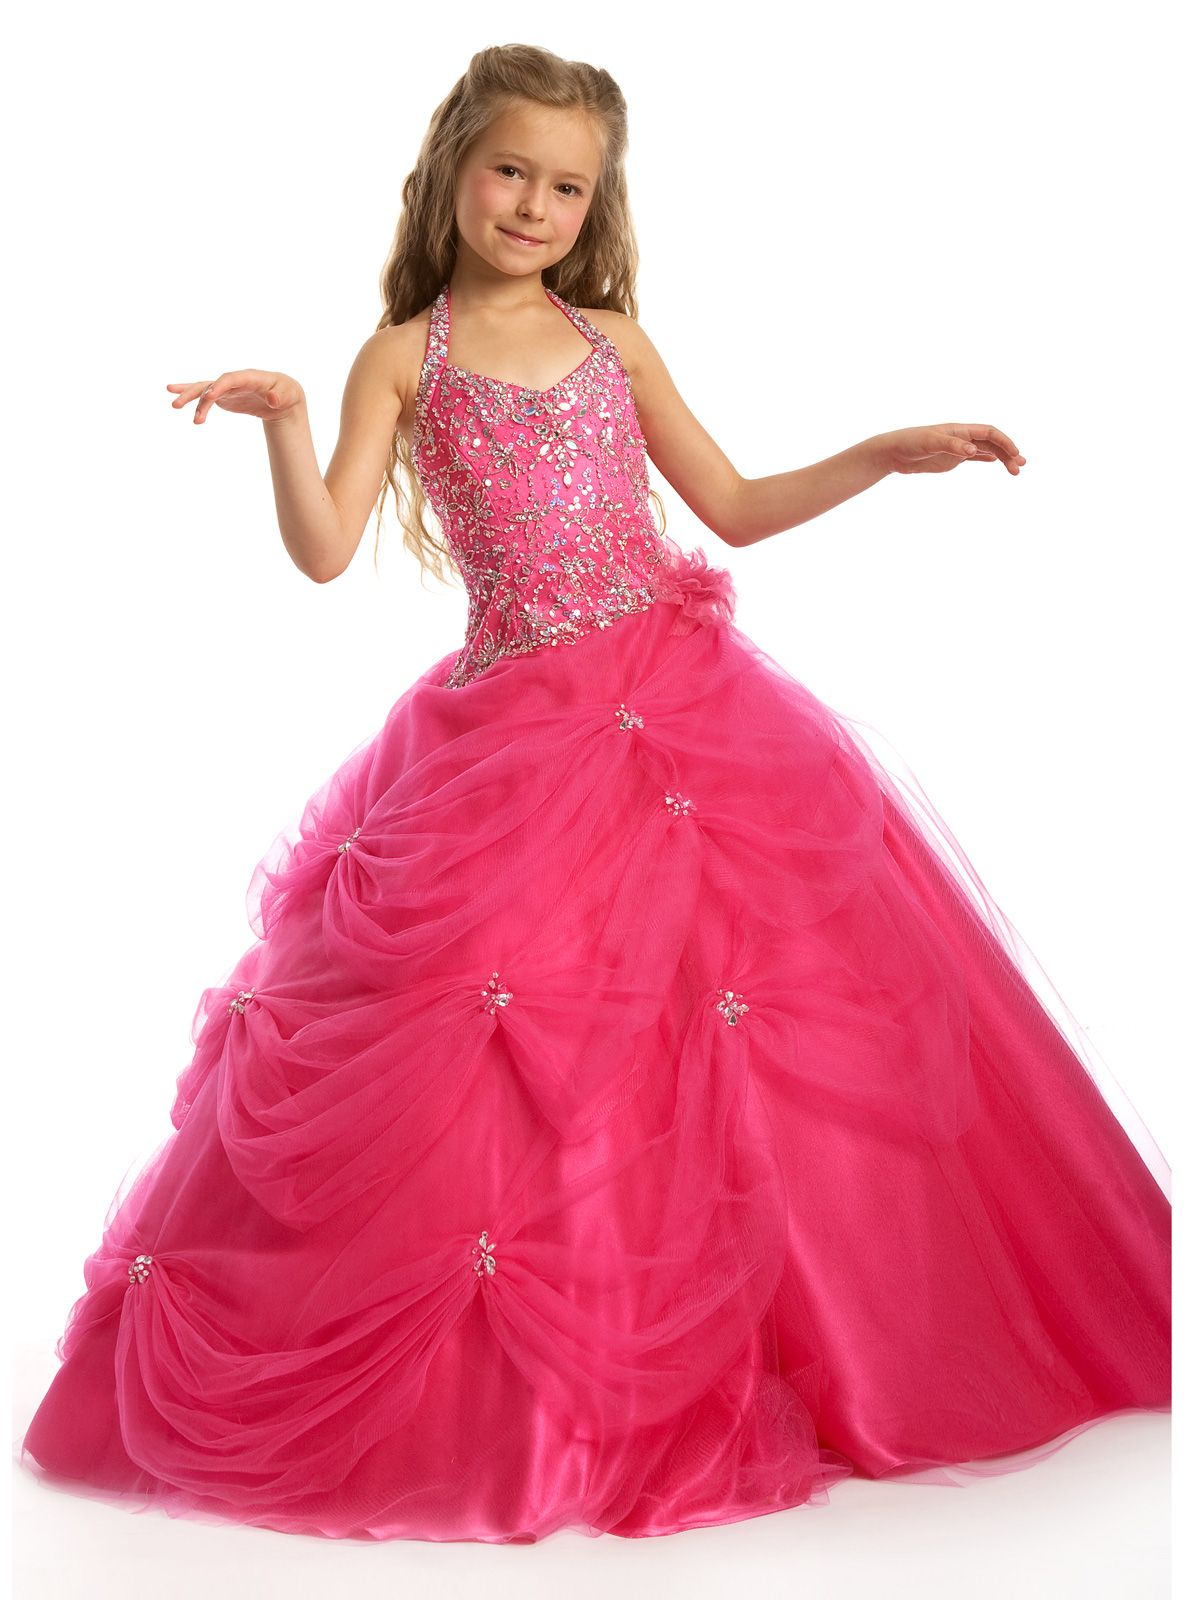 hot pink brides maid dresses for girls